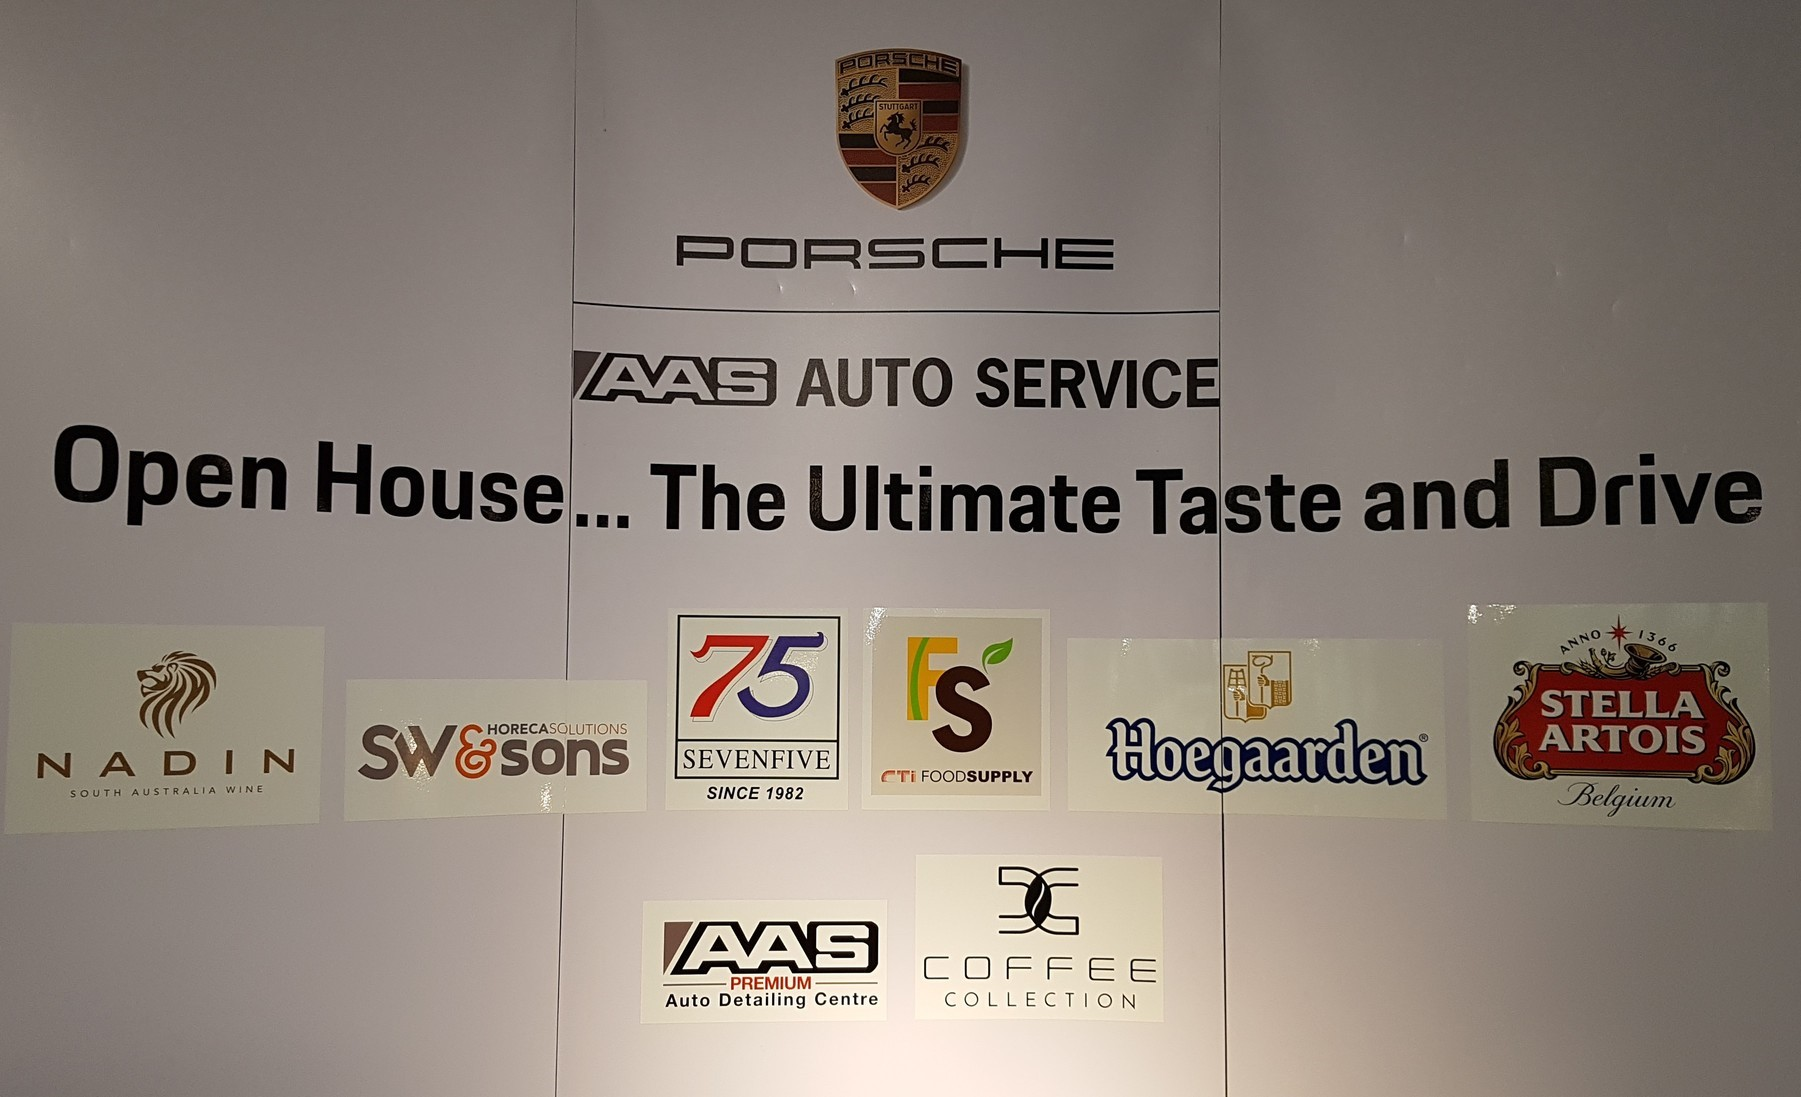 "งาน "" Open House...The Ultimate Taste and Drive """